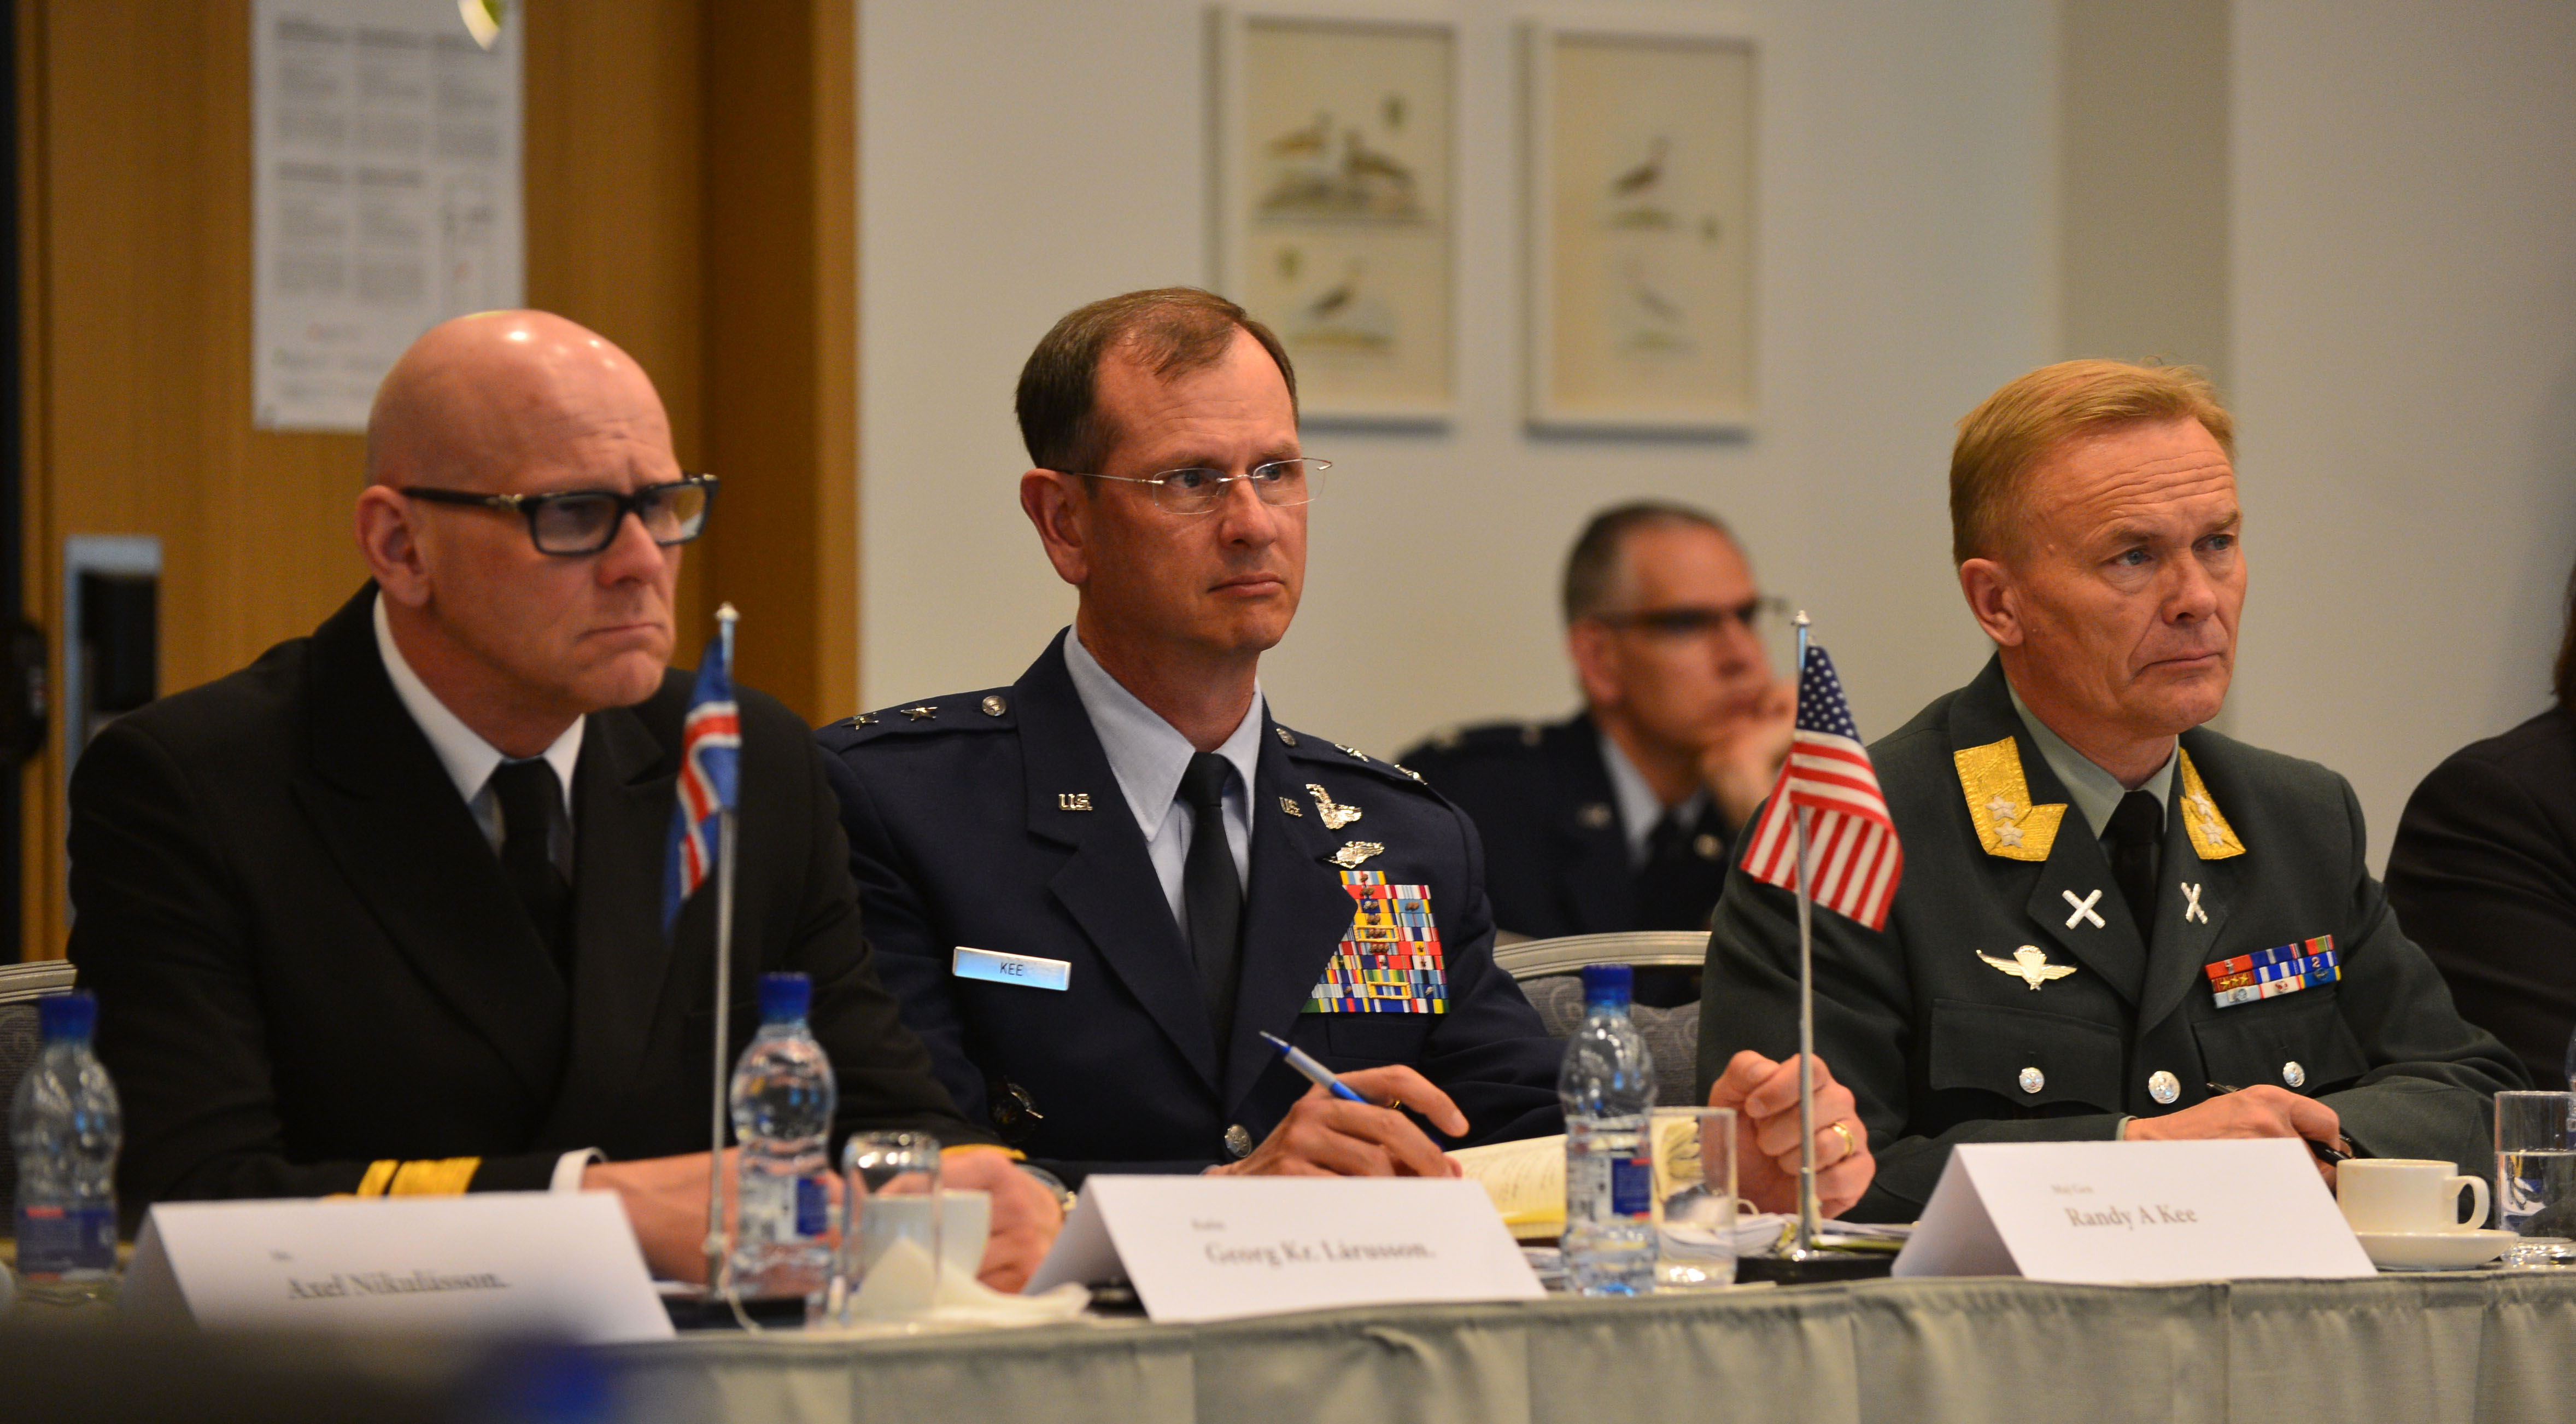 Icelandic Coast Guard Rear Admiral Georg Lárusson, U.S. Air Force Maj. Gen. Randy Kee and Norwegian Army Maj. Gen. Odin Johannessen listen to a presentation during the Arctic Security Forces Roundtable, May 12, 2015 in Reykjavik, Iceland. Kee and Johannessen co-led the conference, while Lárusson led coordination of host nation support. Representatives from 11 nations across Europe and North America met for the ASFR in order to promote regional understanding and enhance multilateral security operations within the Arctic area.